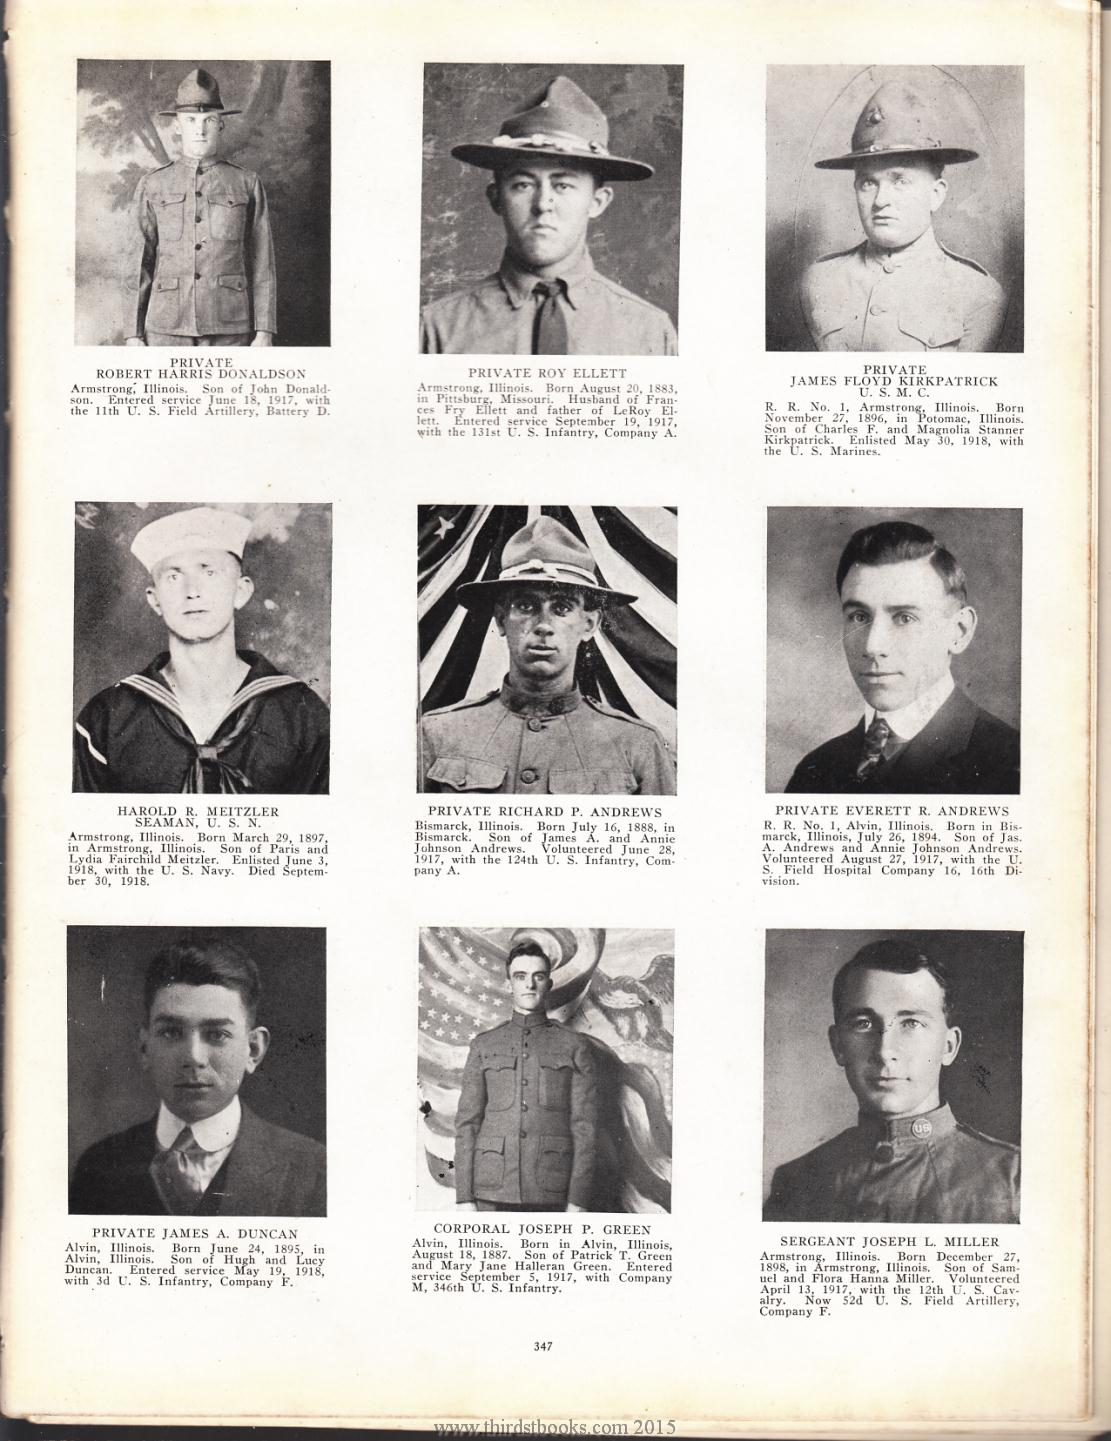 Illinois vermilion county armstrong - Everett R Andrews Page 347